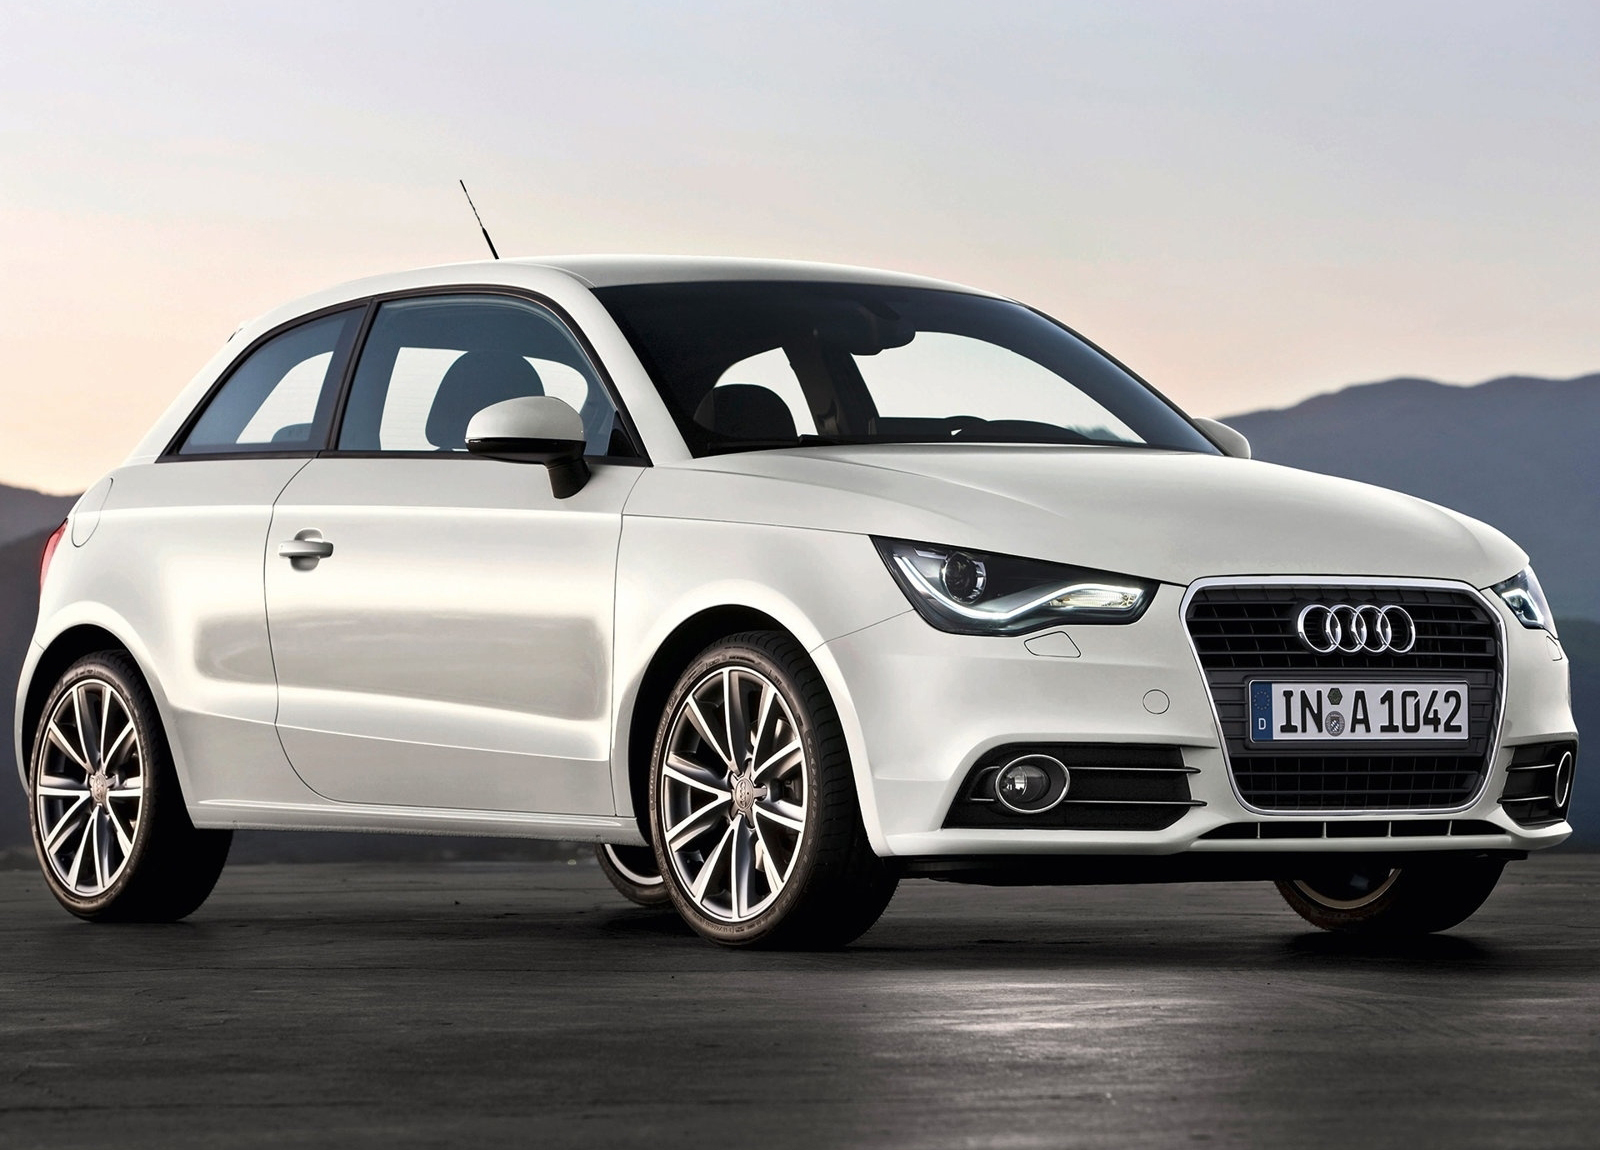 1600x1150 - Audi A1 Wallpapers 9